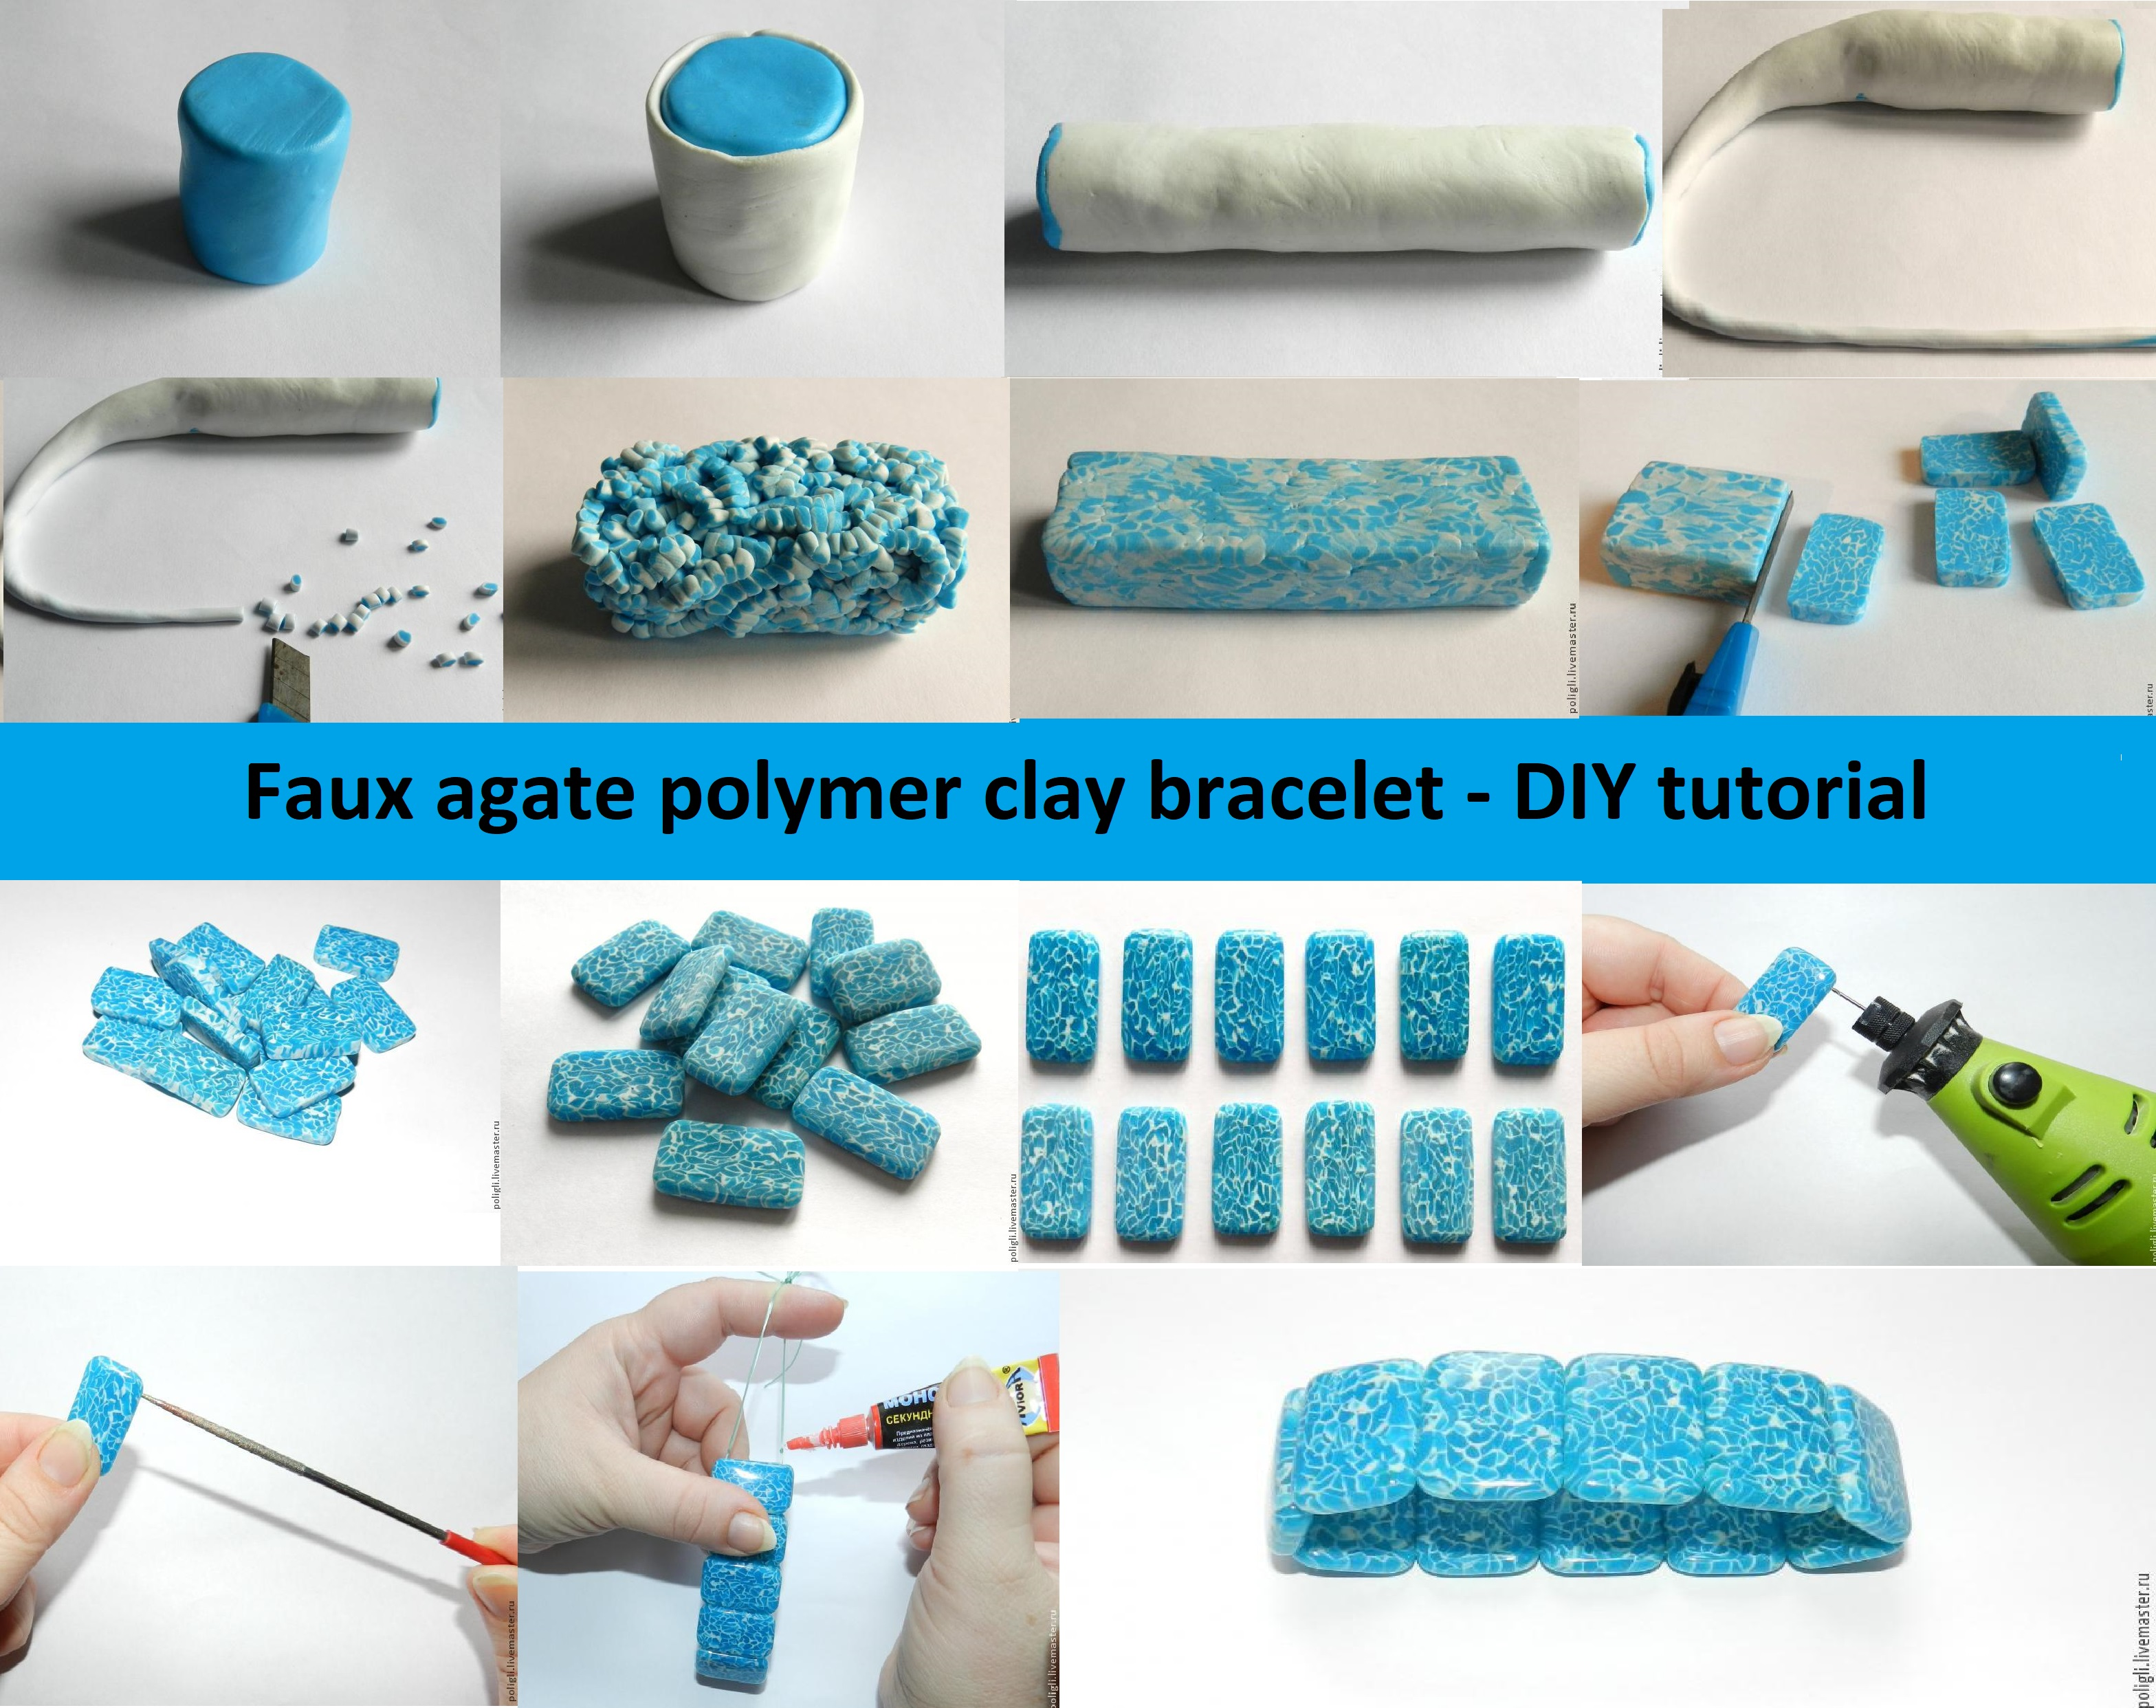 Faux agate polymer clay bracelet - DIY tutorial